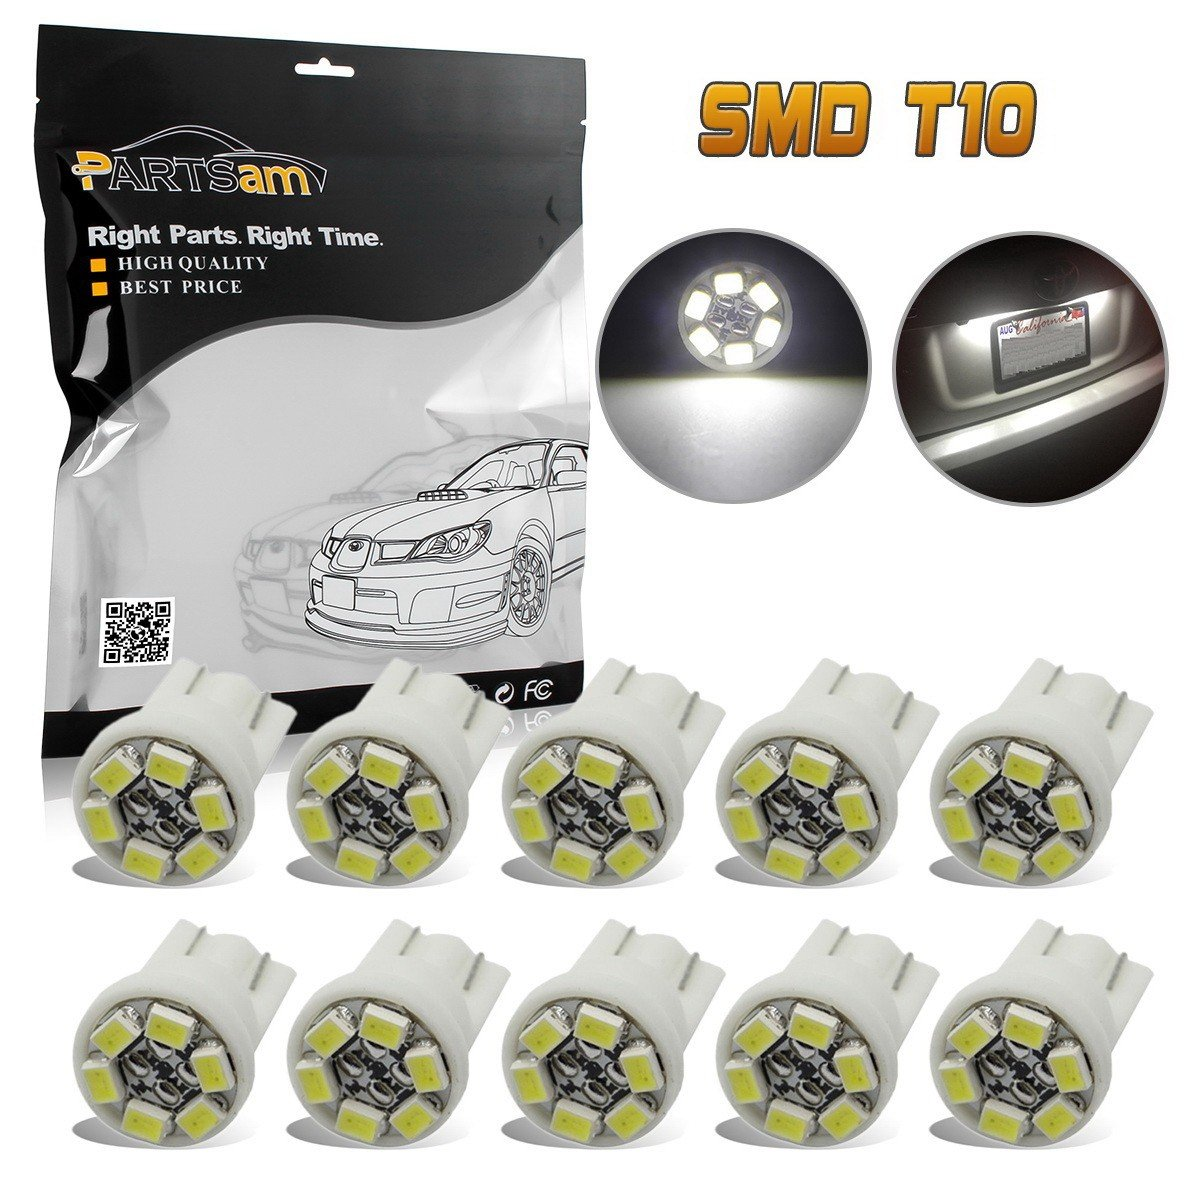 Partsam T10 194 168 LED Light Bulbs for Interior Lights Map Dome Door Courtesy License Plate Instrument Panel Gauge Cluster Dashboard Light Bulbs-10pcs White